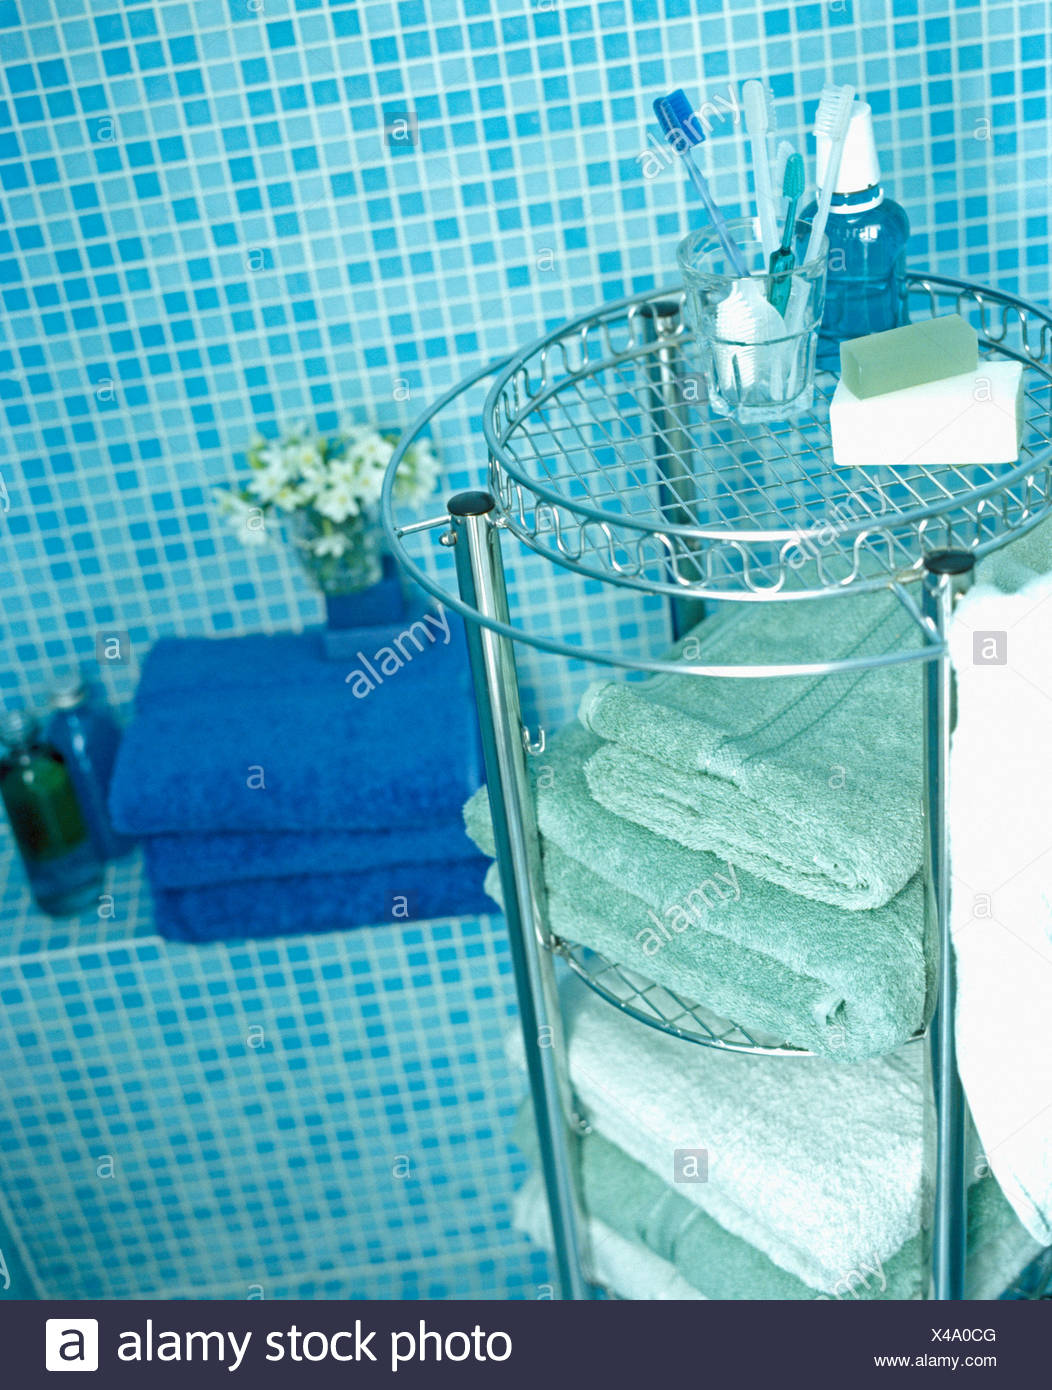 Close-up of folded towels on chrome shelf unit with glass shelves ...